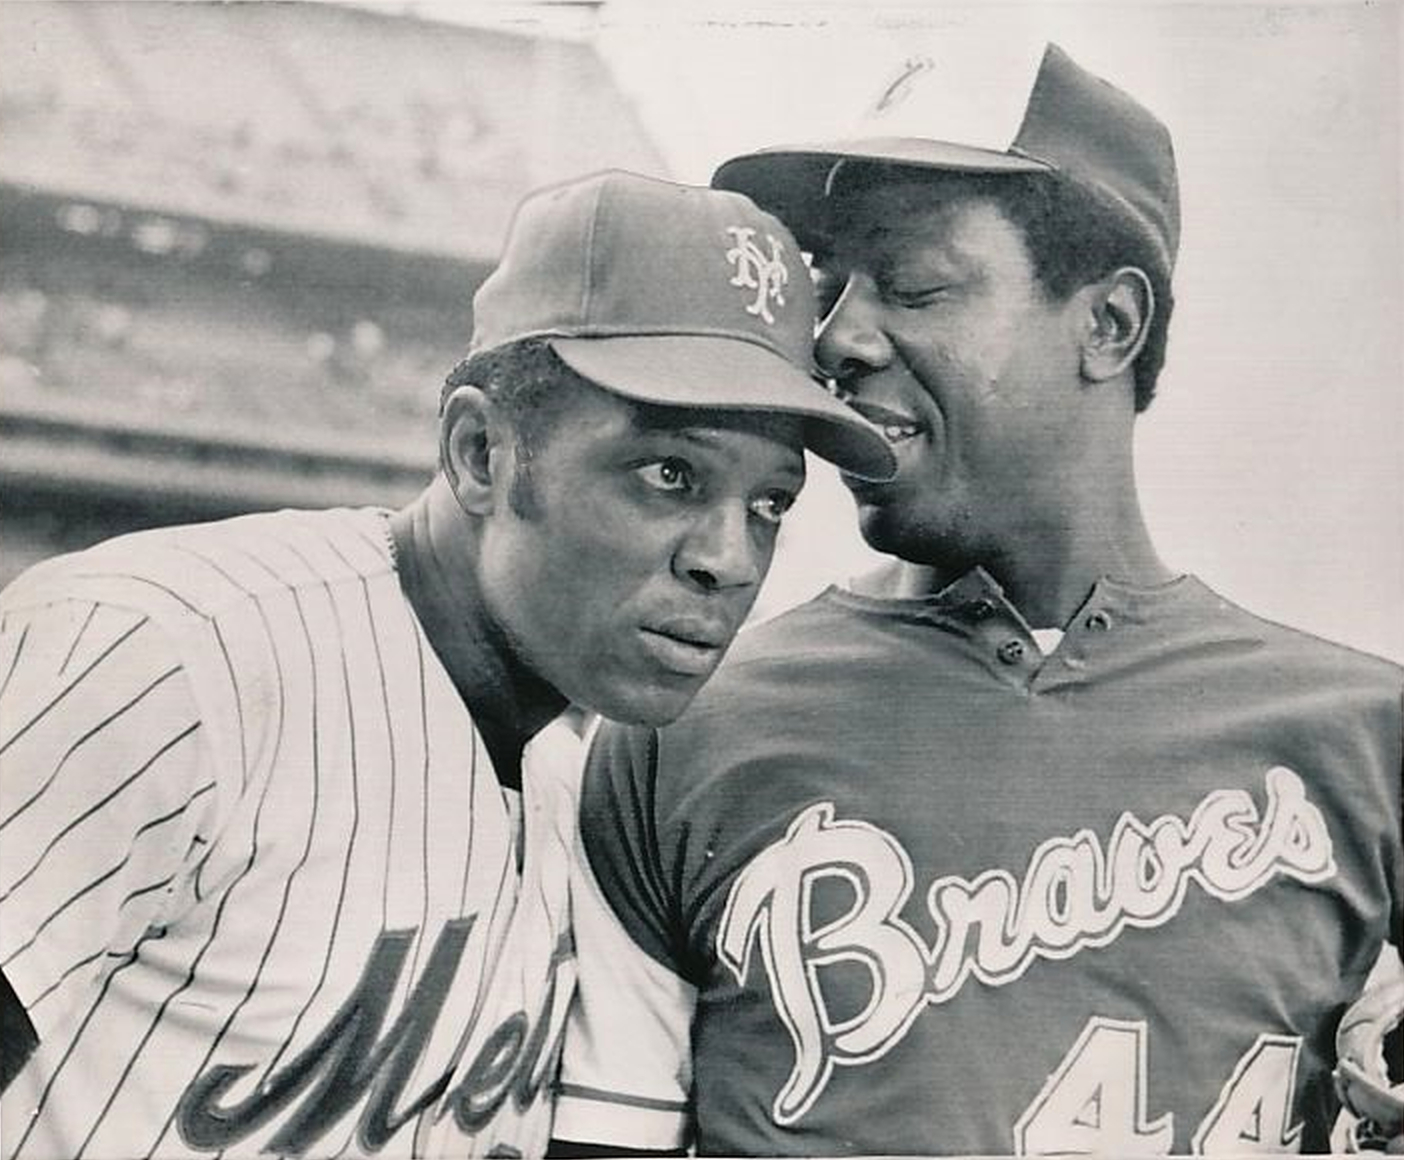 The Stress of Hank Aaron Breaking Babe Ruth's All-Time Home Run Record